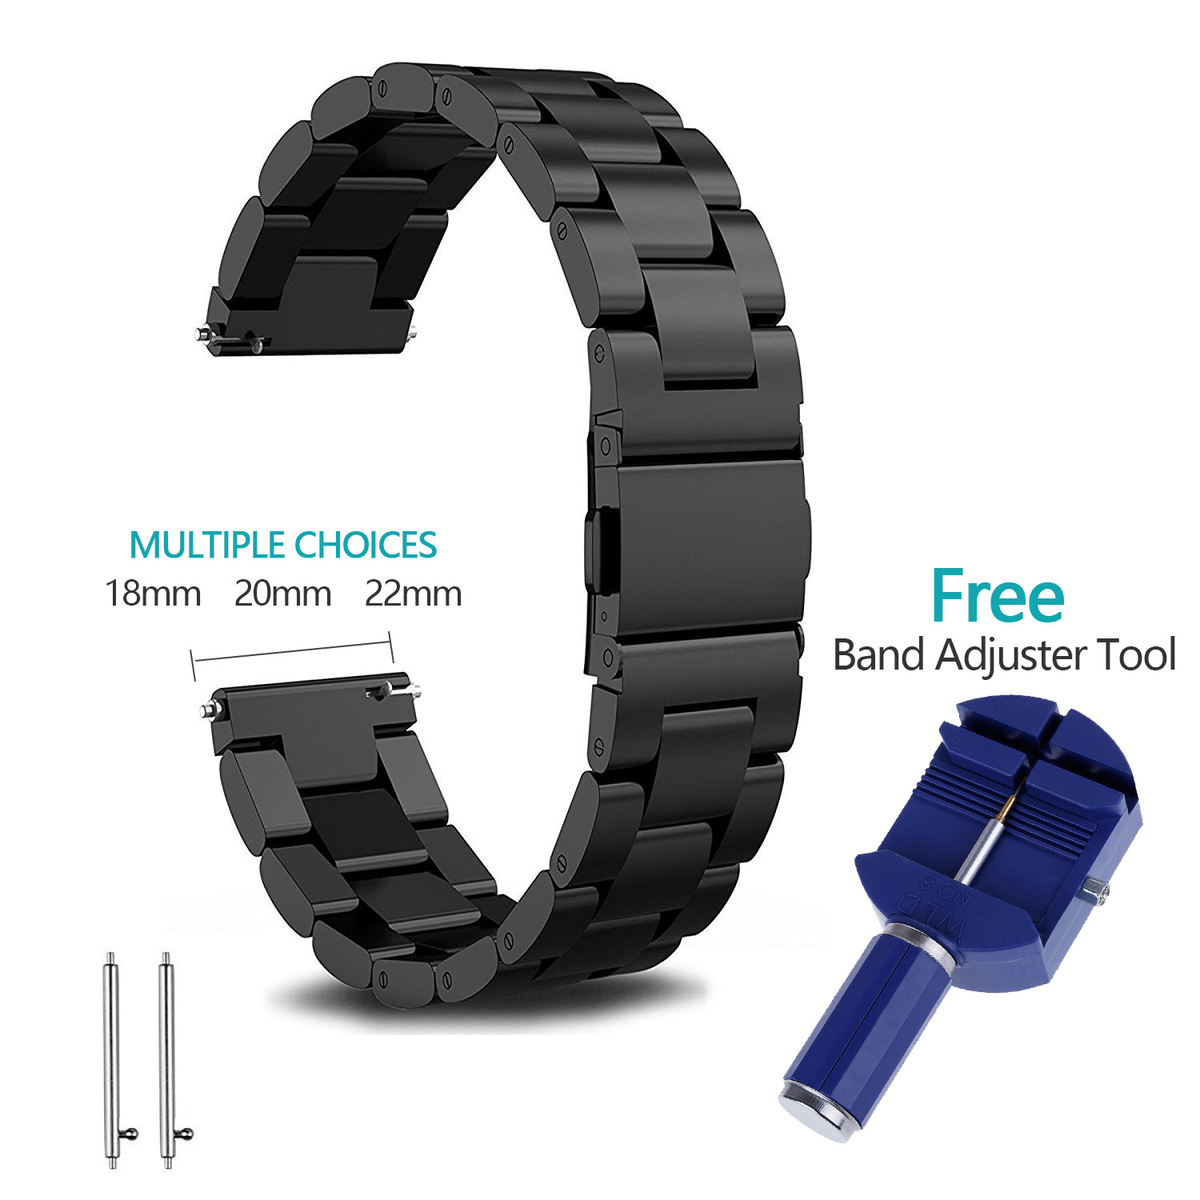 18mm 20mm 22mm Stainless Steel Watch Band Strap For Samsung Gear S2 S3 smart Watch Link bracelet black For Gear S2 Replacement18mm 20mm 22mm Stainless Steel Watch Band Strap For Samsung Gear S2 S3 smart Watch Link bracelet black For Gear S2 Replacement